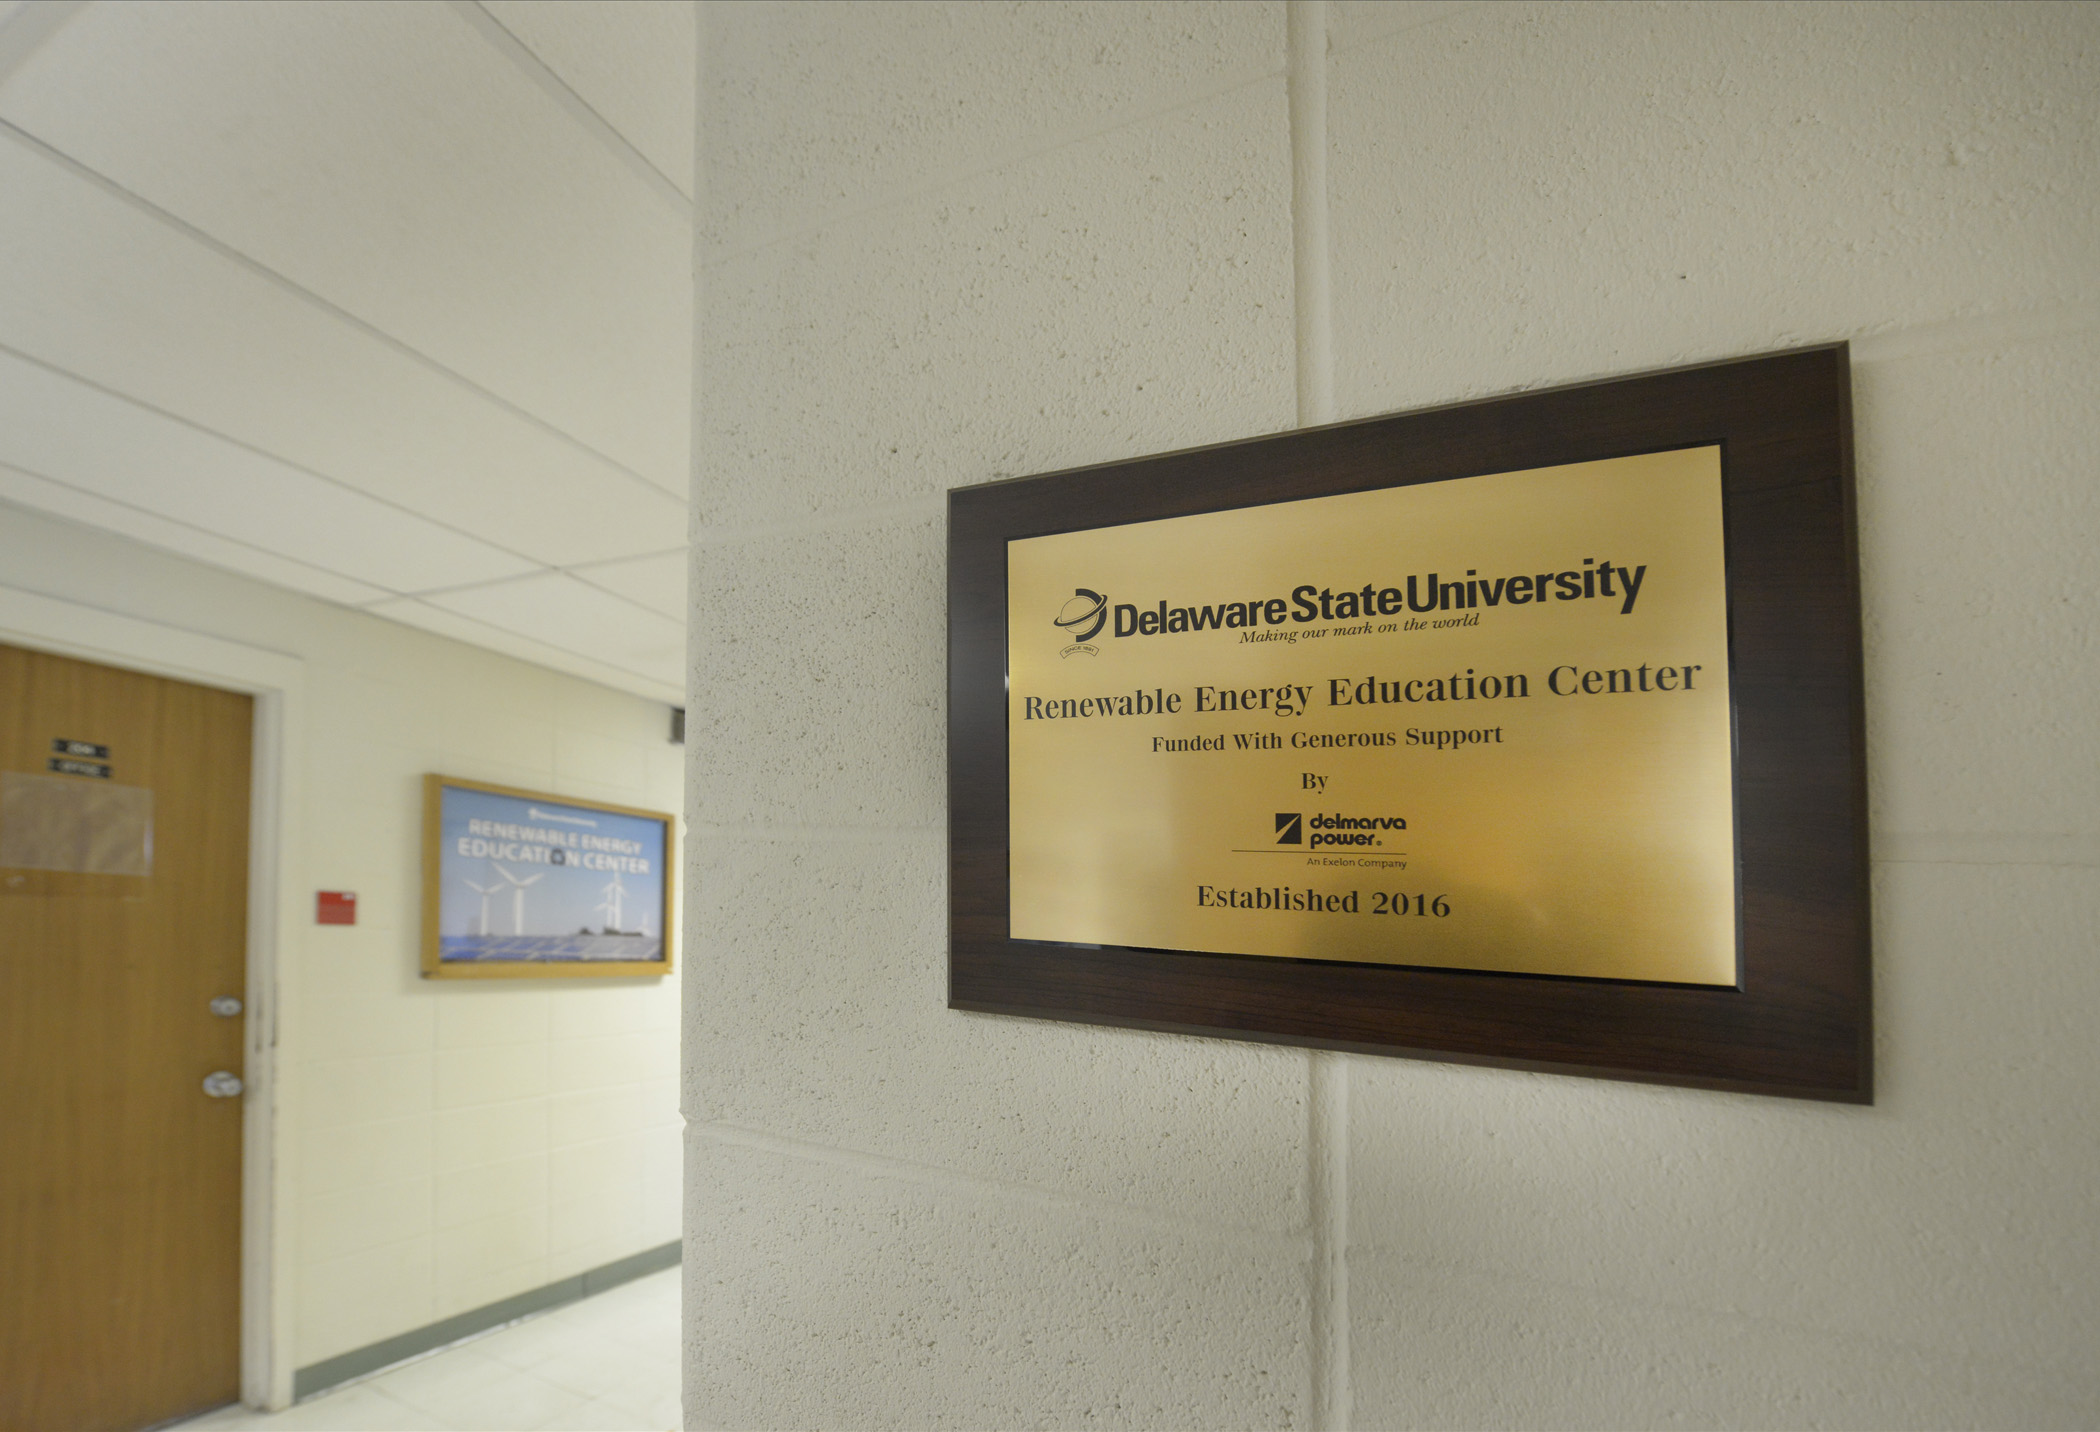 Plaque recognizing Delmarva Power's support of Delaware State University hangs on wall of the Renewable Energy Education Center